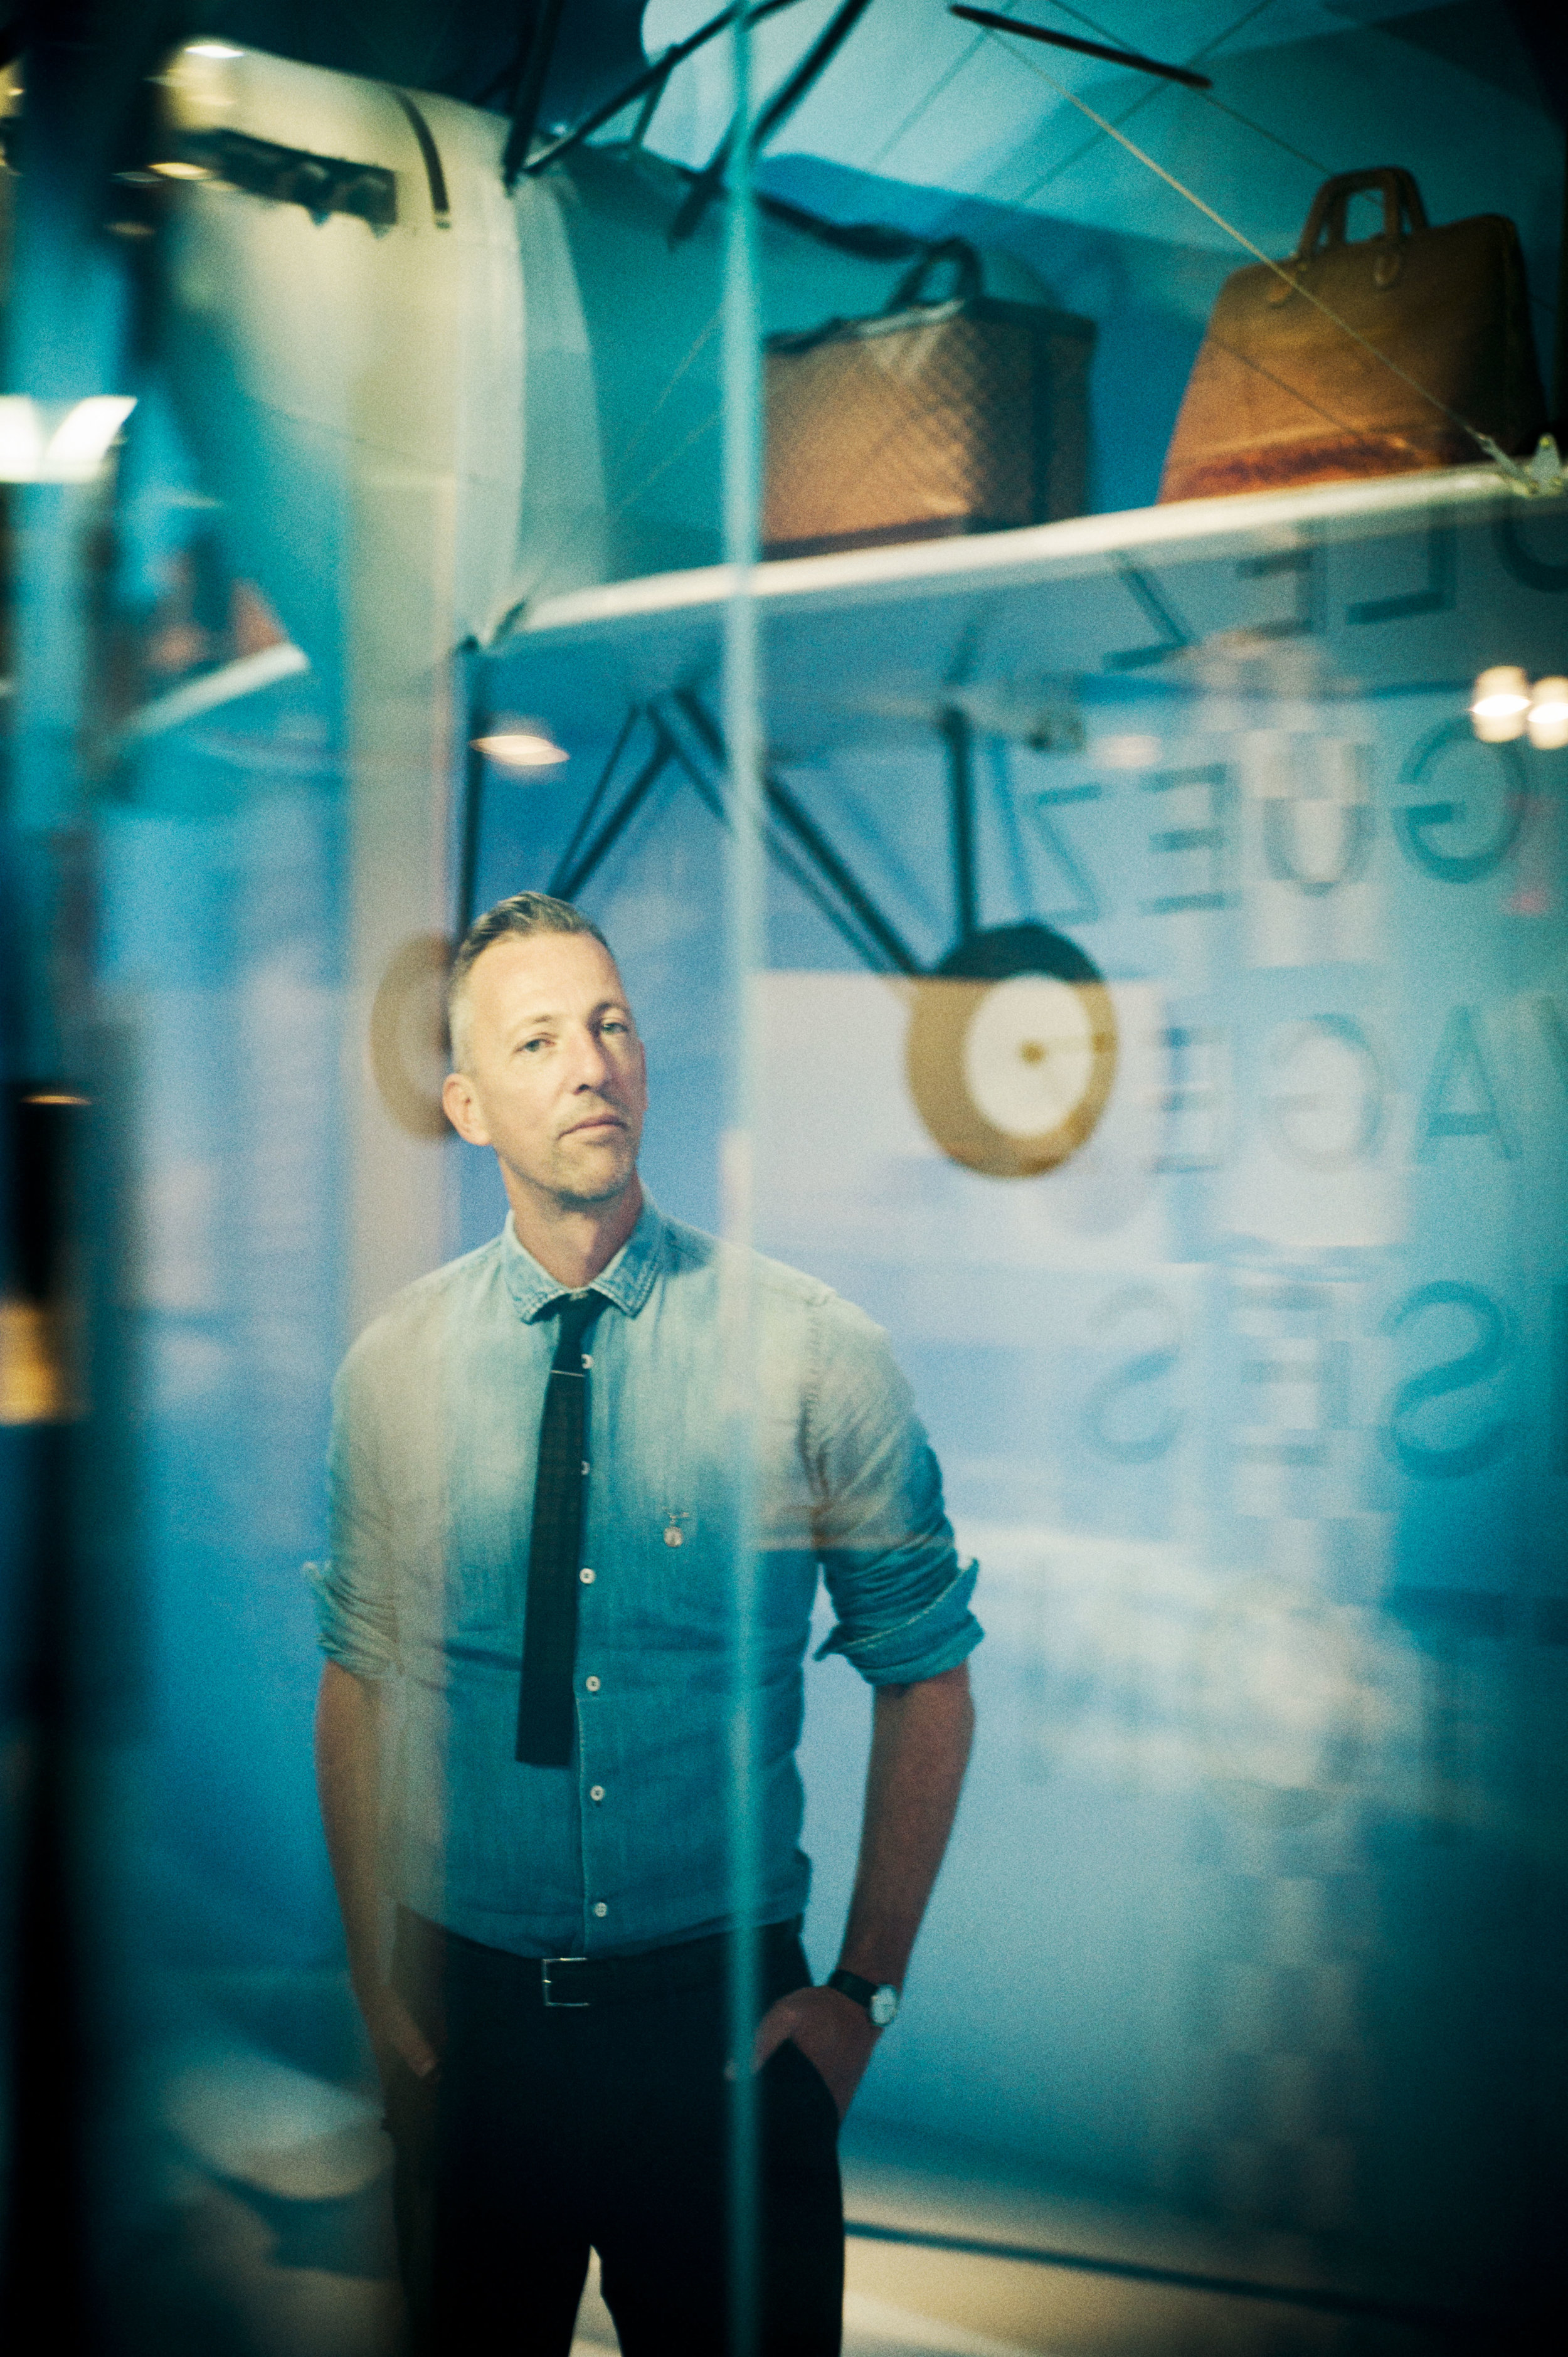 Olivier Saillard | photographed by ioulex at American Stock Exchange Building